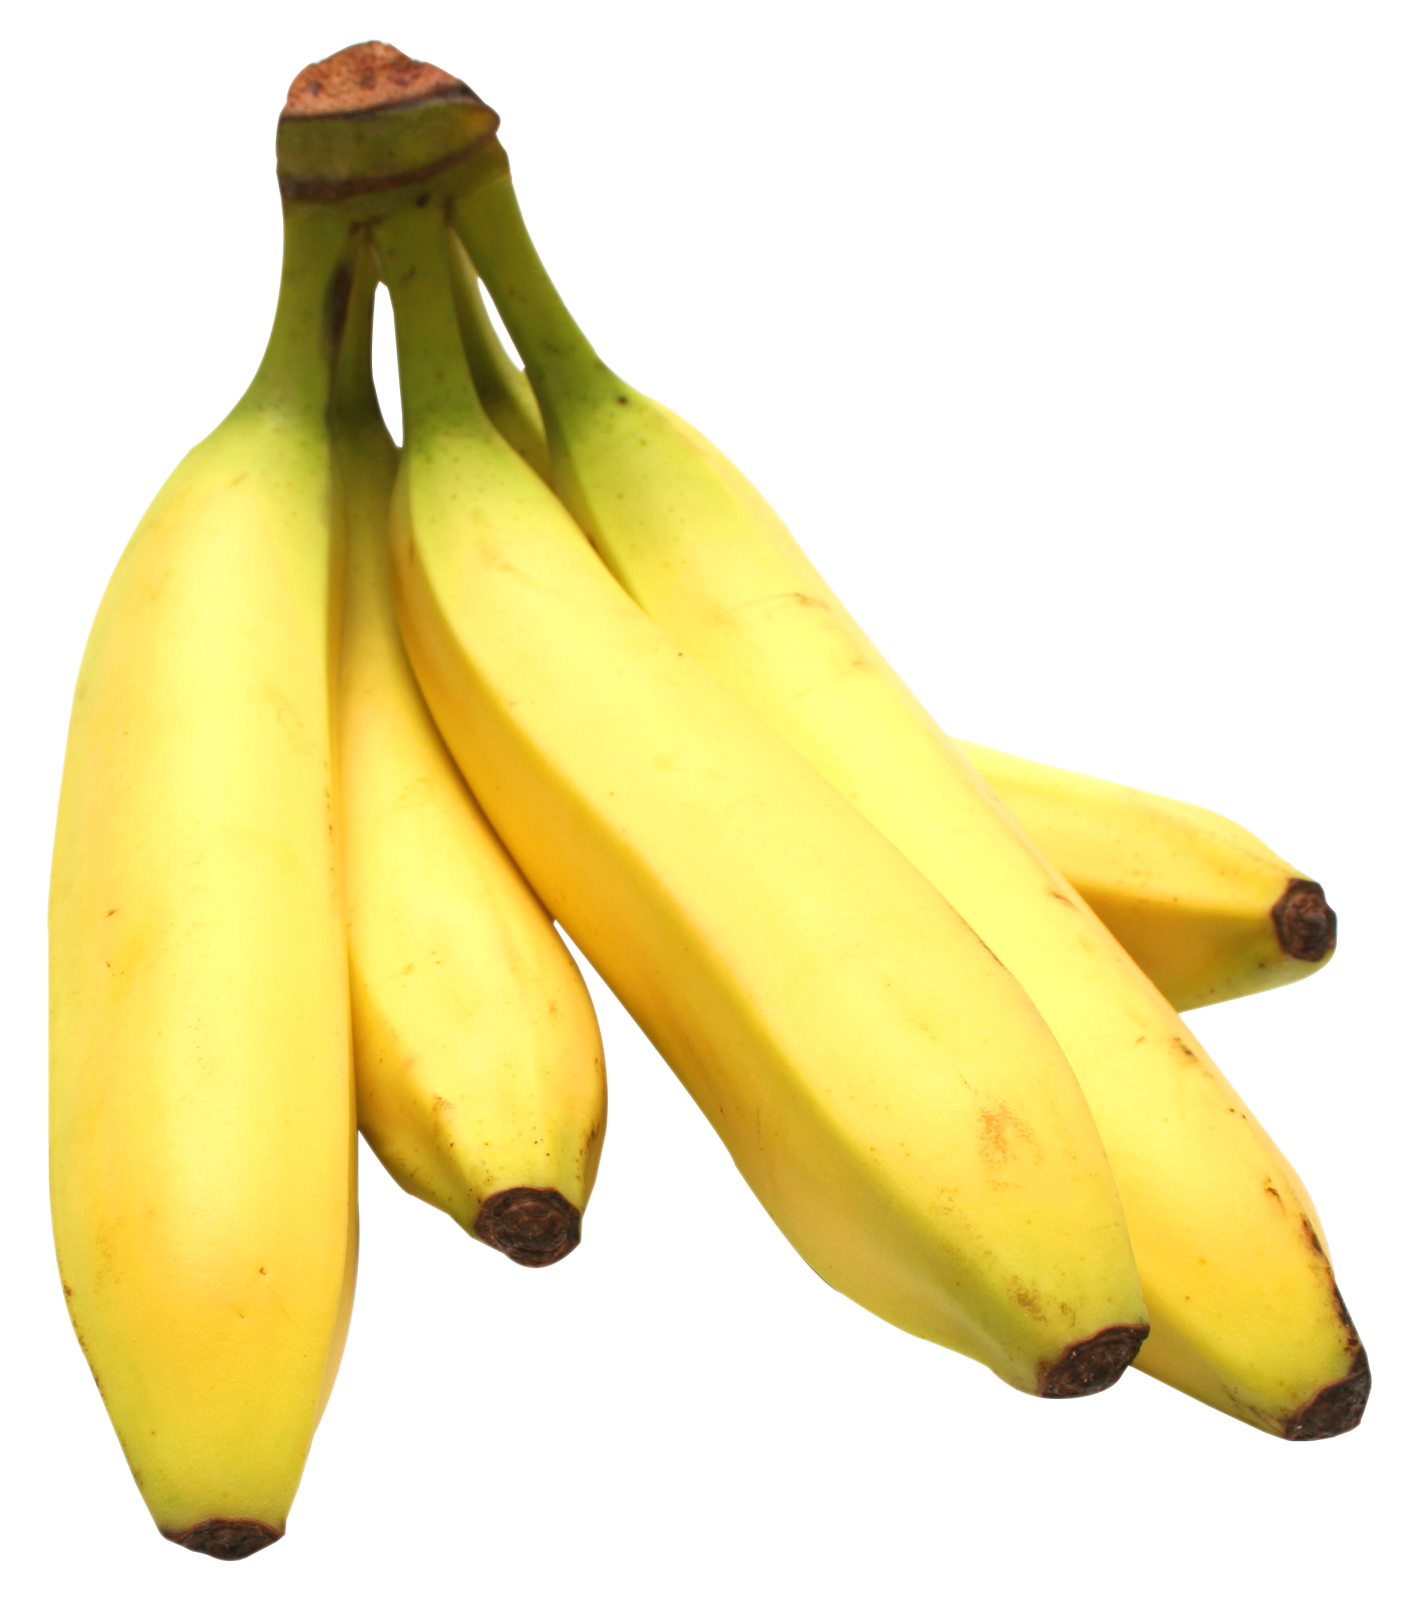 bananas png - photo #24